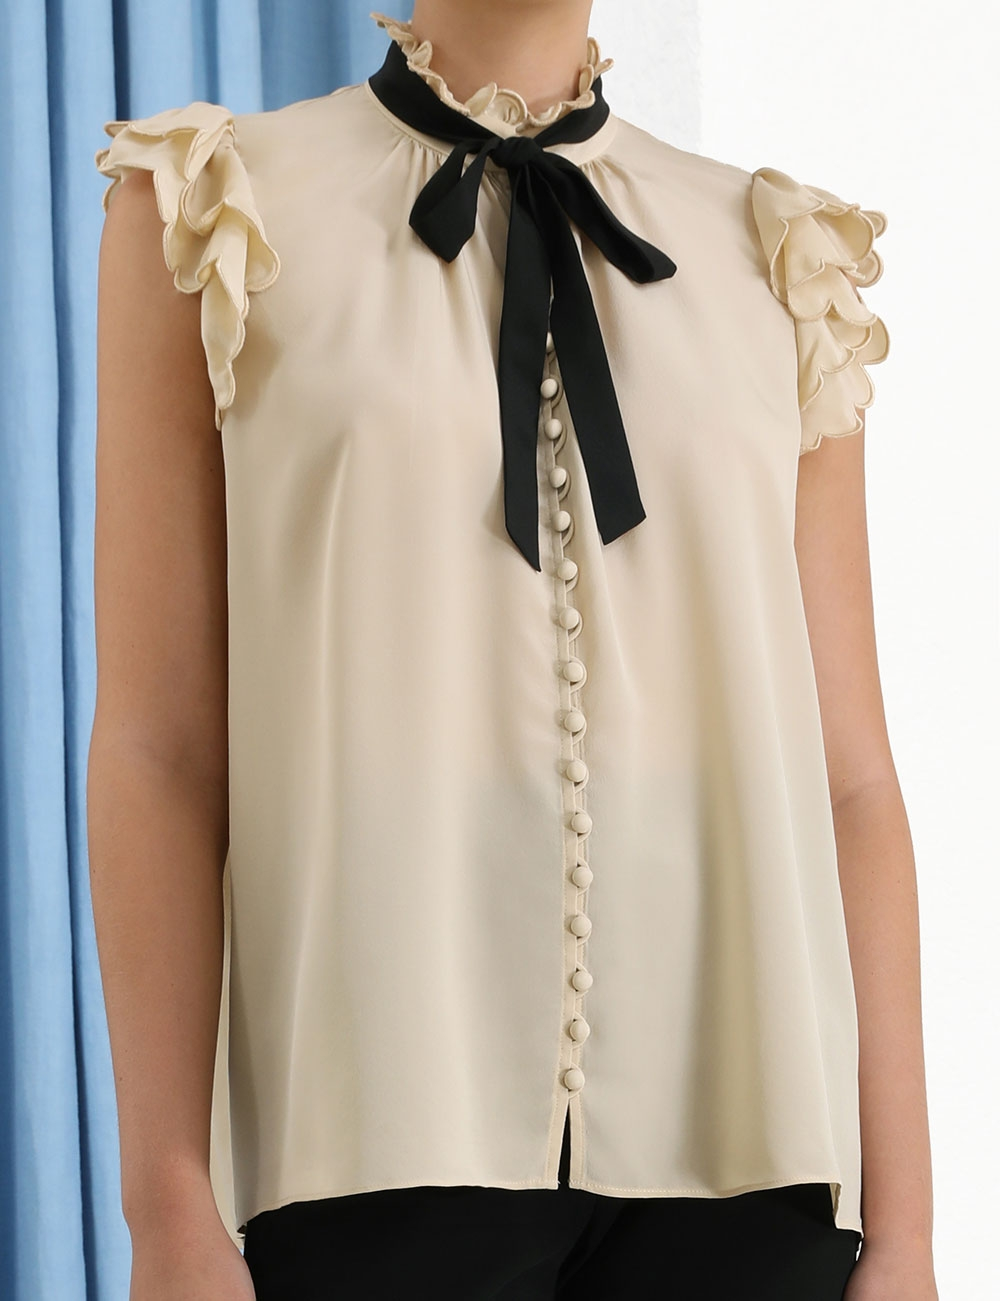 Silk Scallop Sleeveless Top